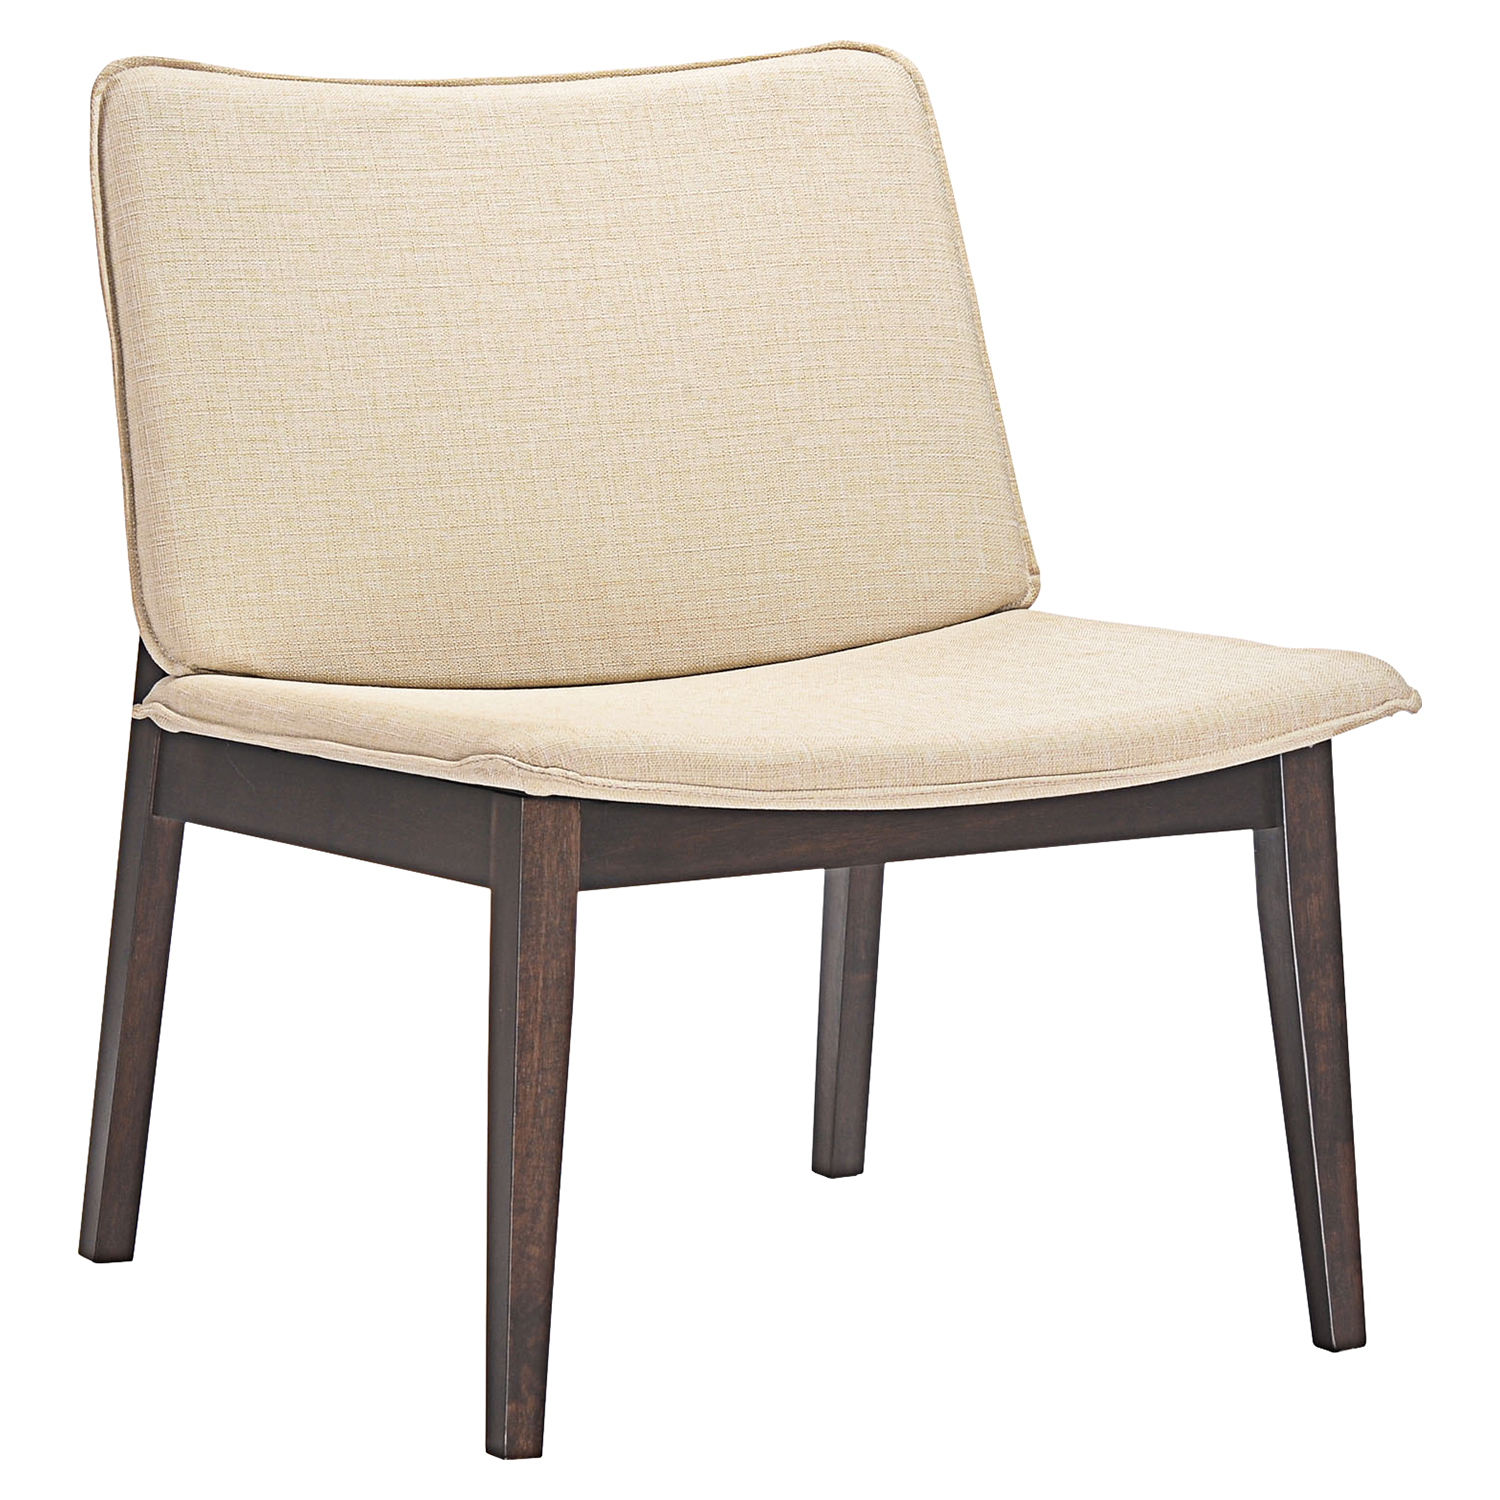 Evade Lounge Chair - Walnut, Beige - EEI-1612-WAL-BEI